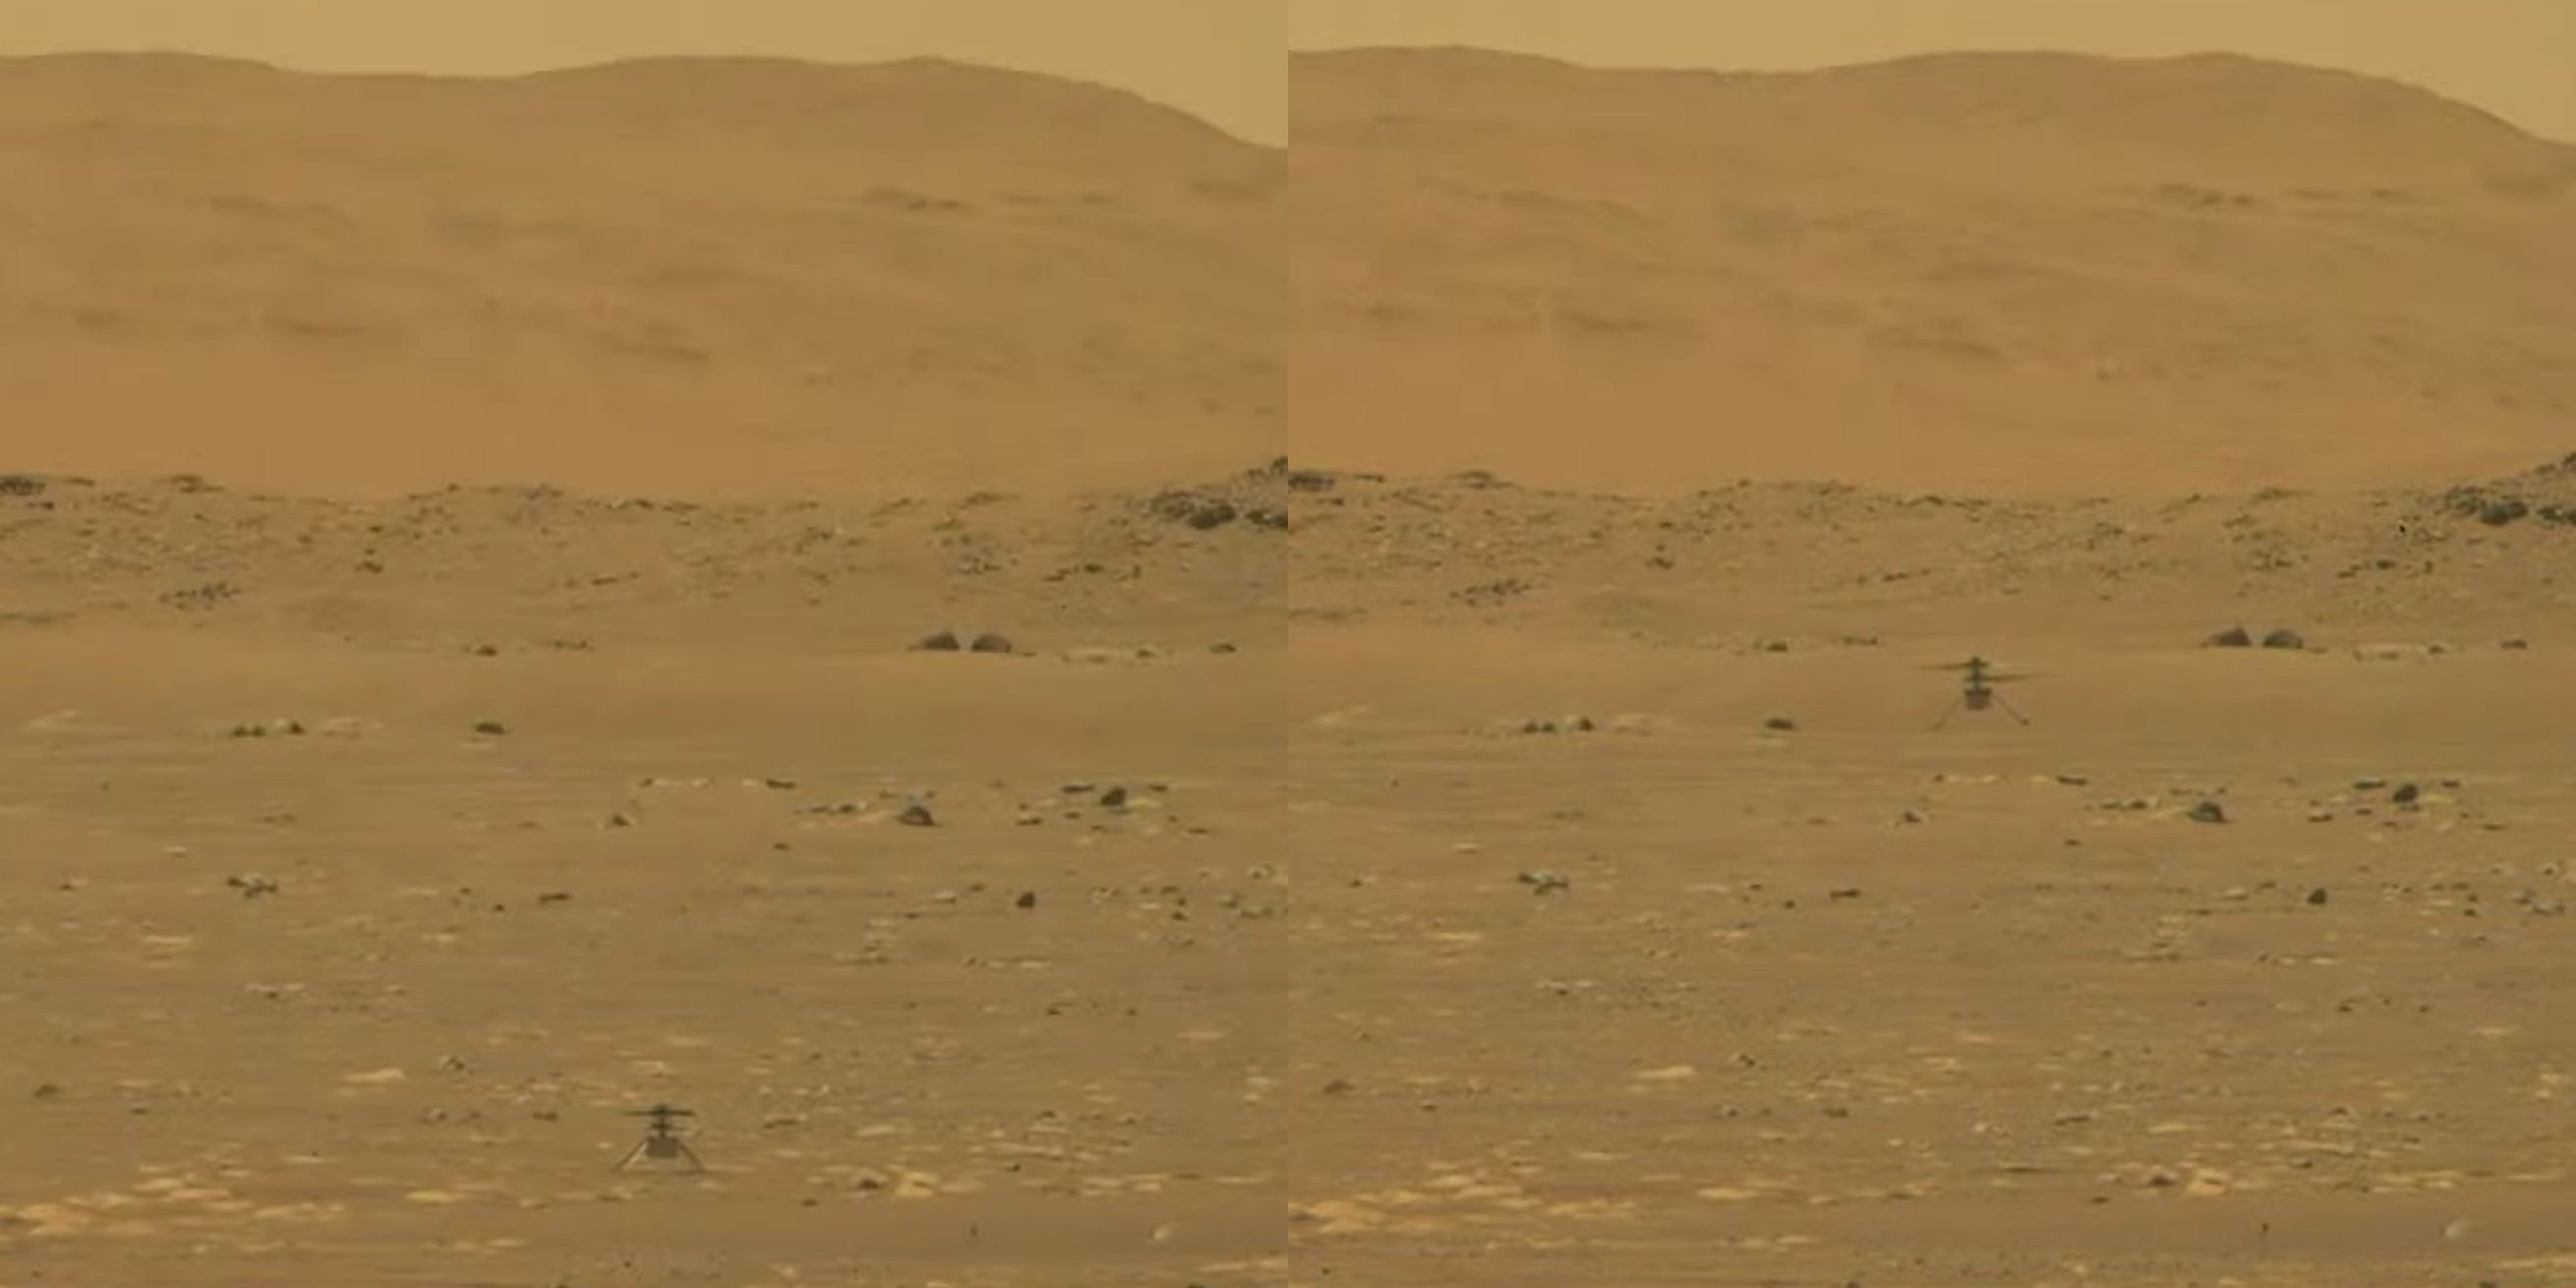 This side-by-side image shows <em>Ingenuity</em>, as seen from the Mars Perseverance rover, on the ground and then up in the air.